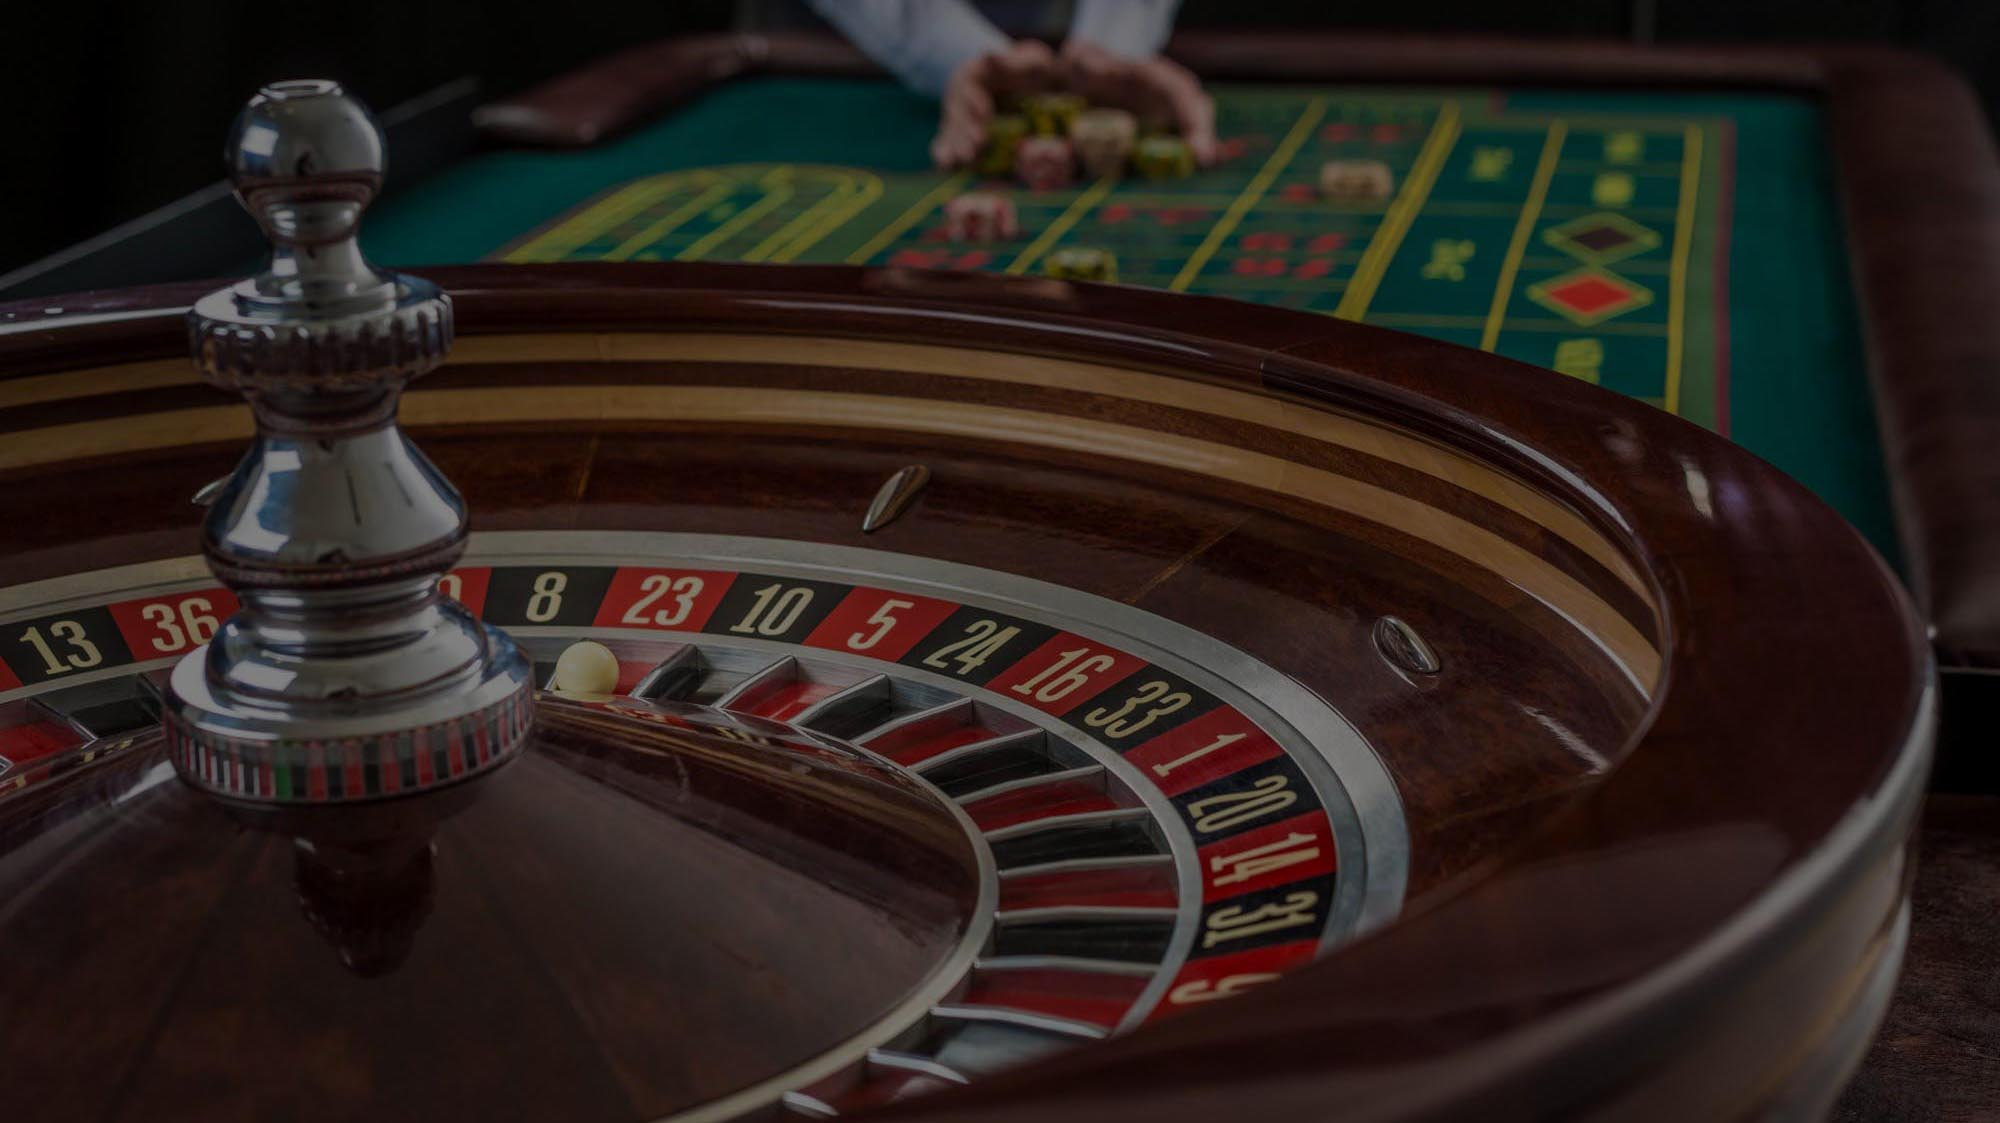 bigstock-Roulette-and-piles-of-gambling-121861334-1